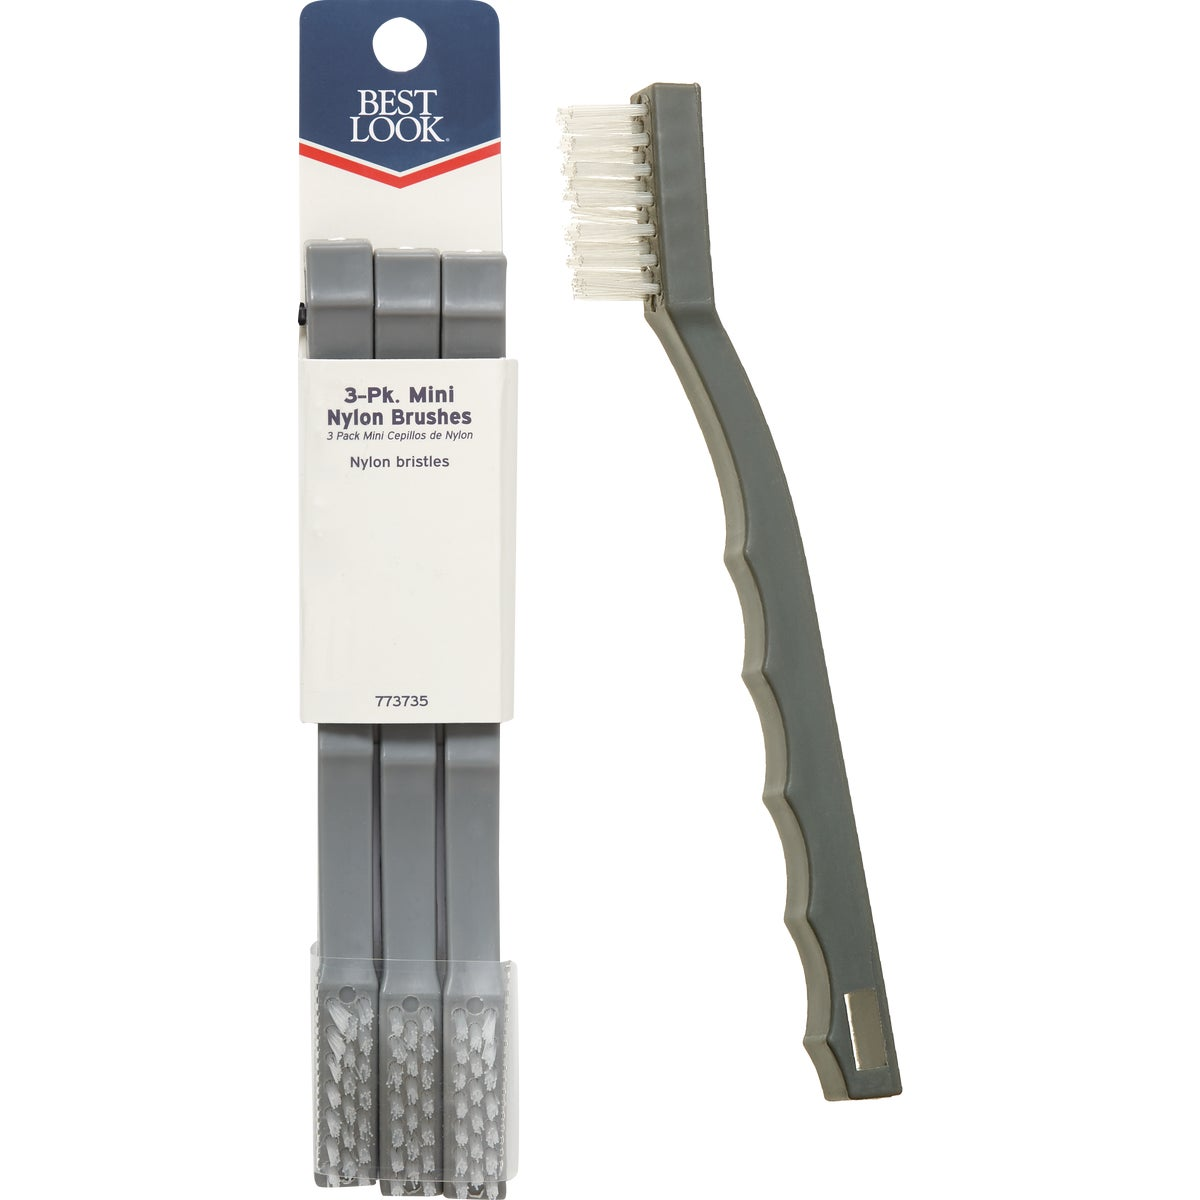 3PK MINI NYLON BRUSH - 46640 by Hyde Mfg Co